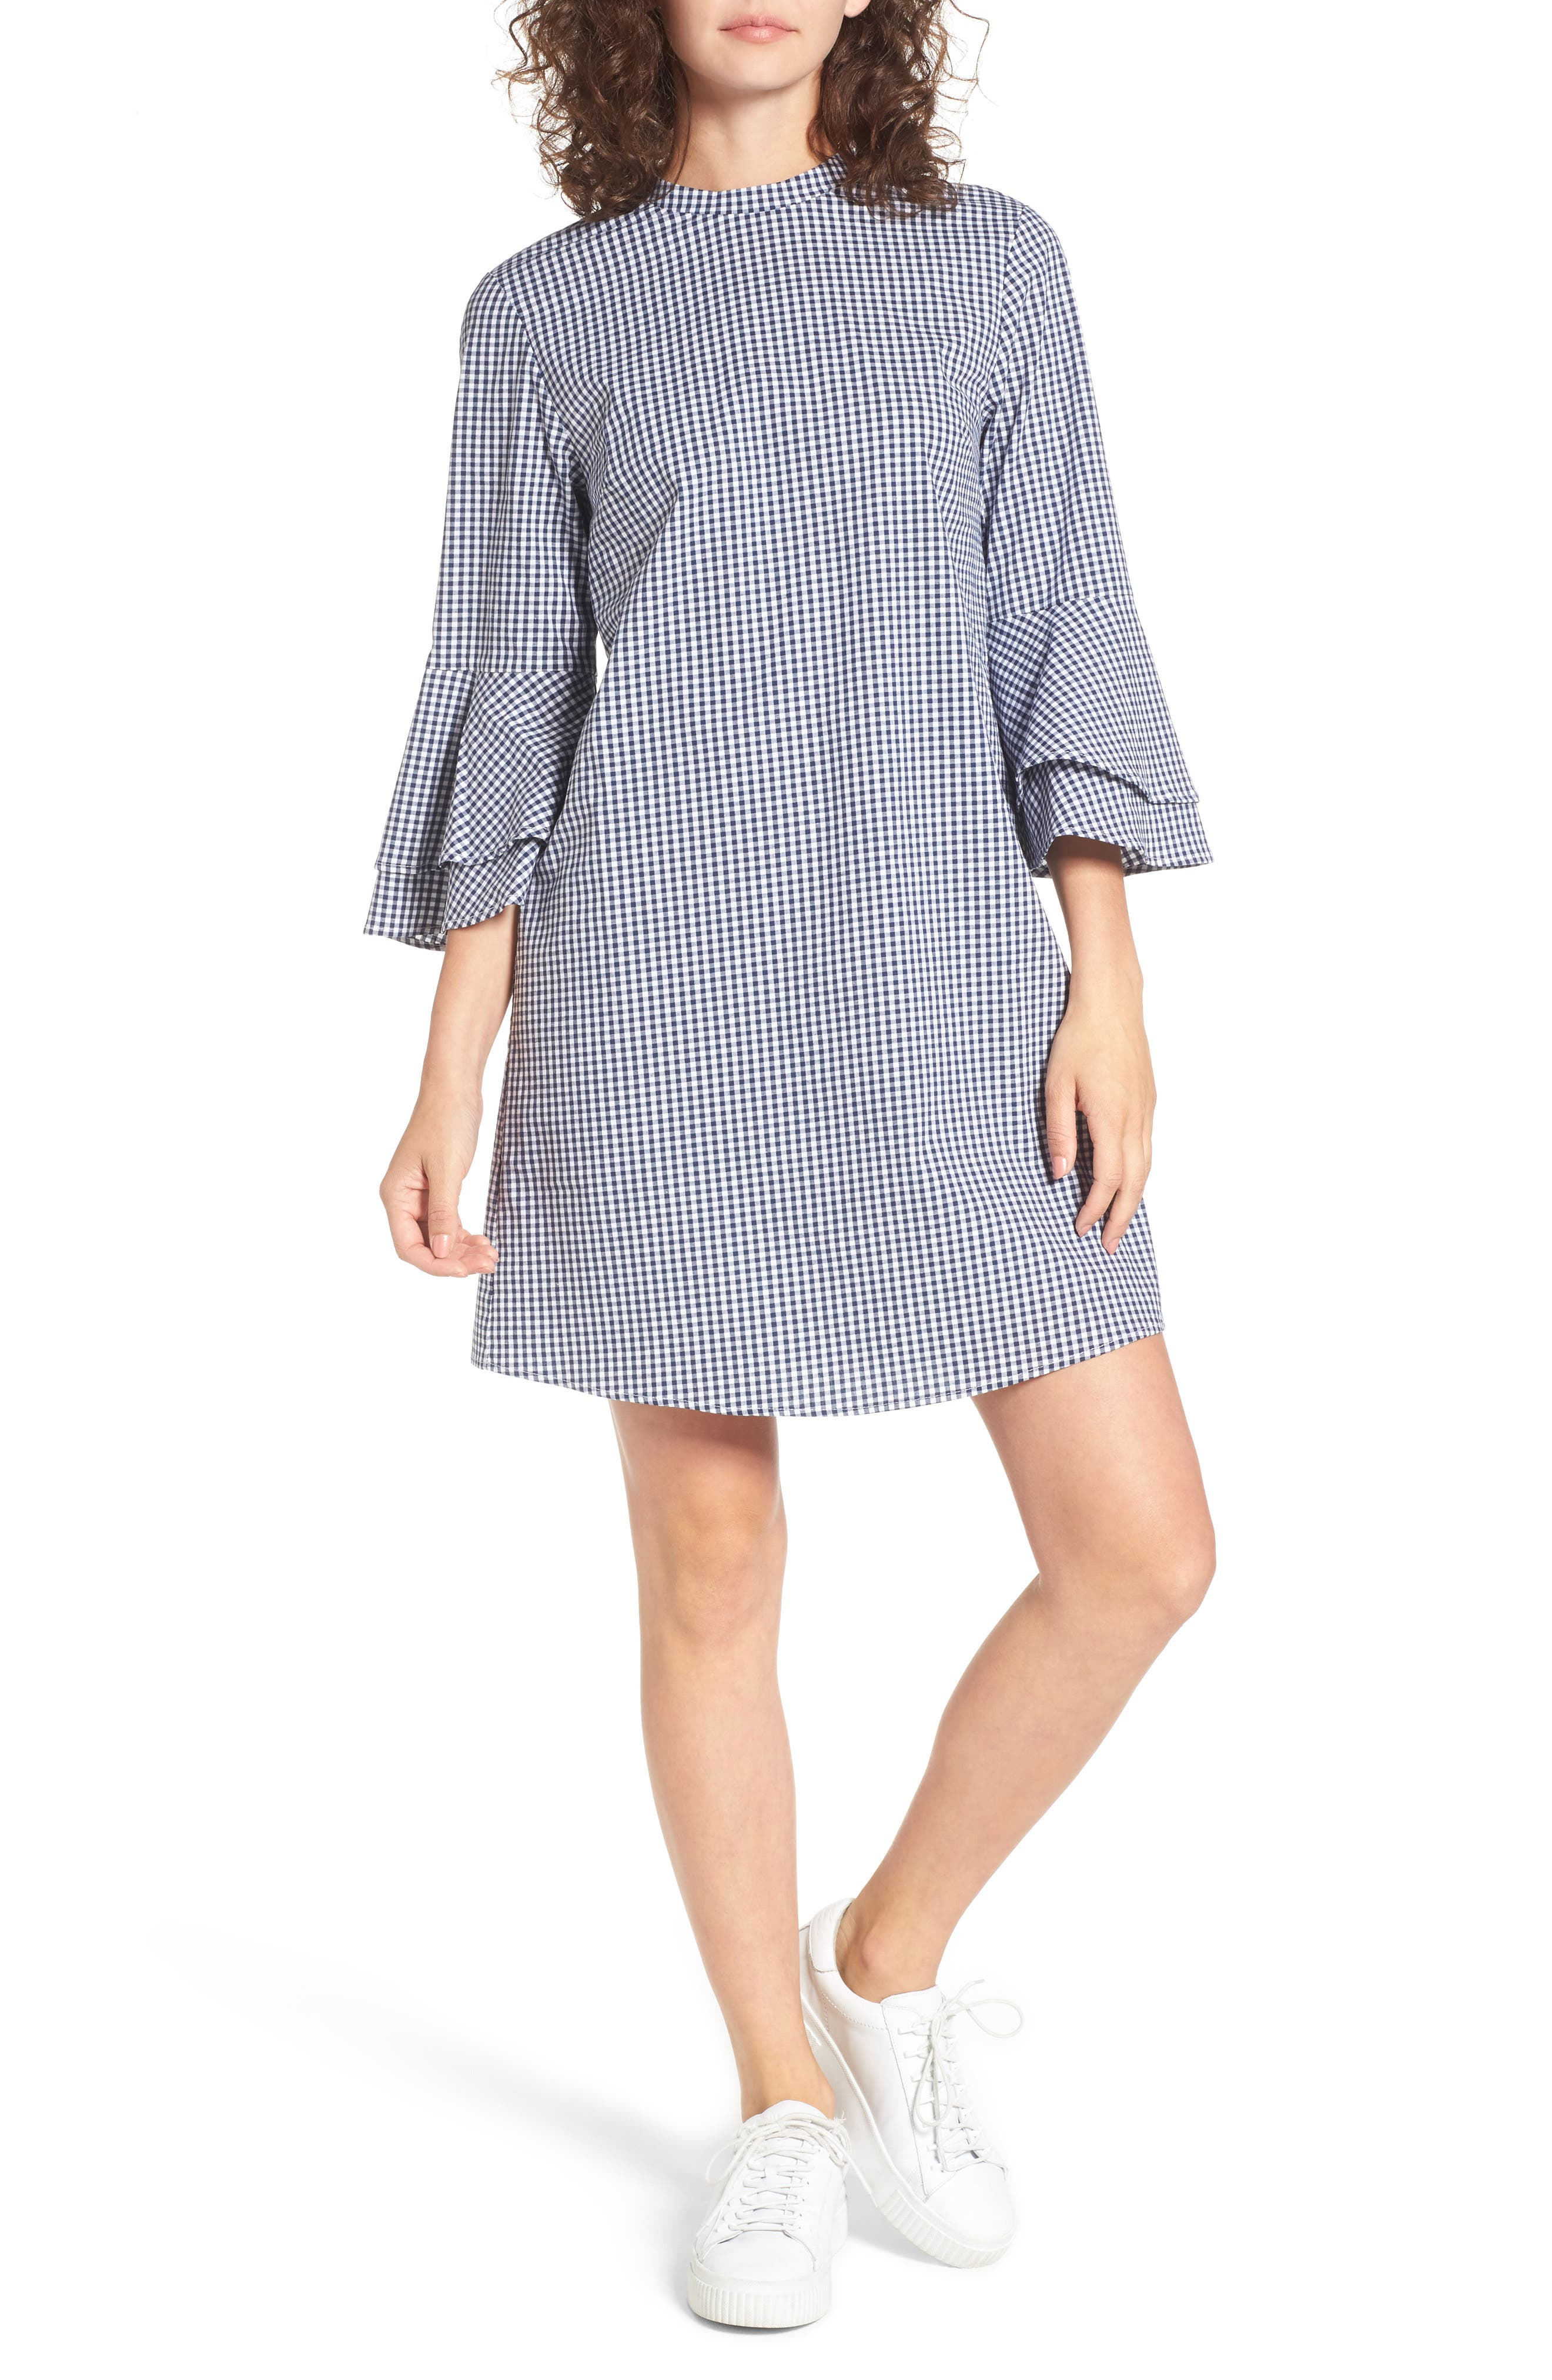 Everly Flare Sleeve Gingham Dress